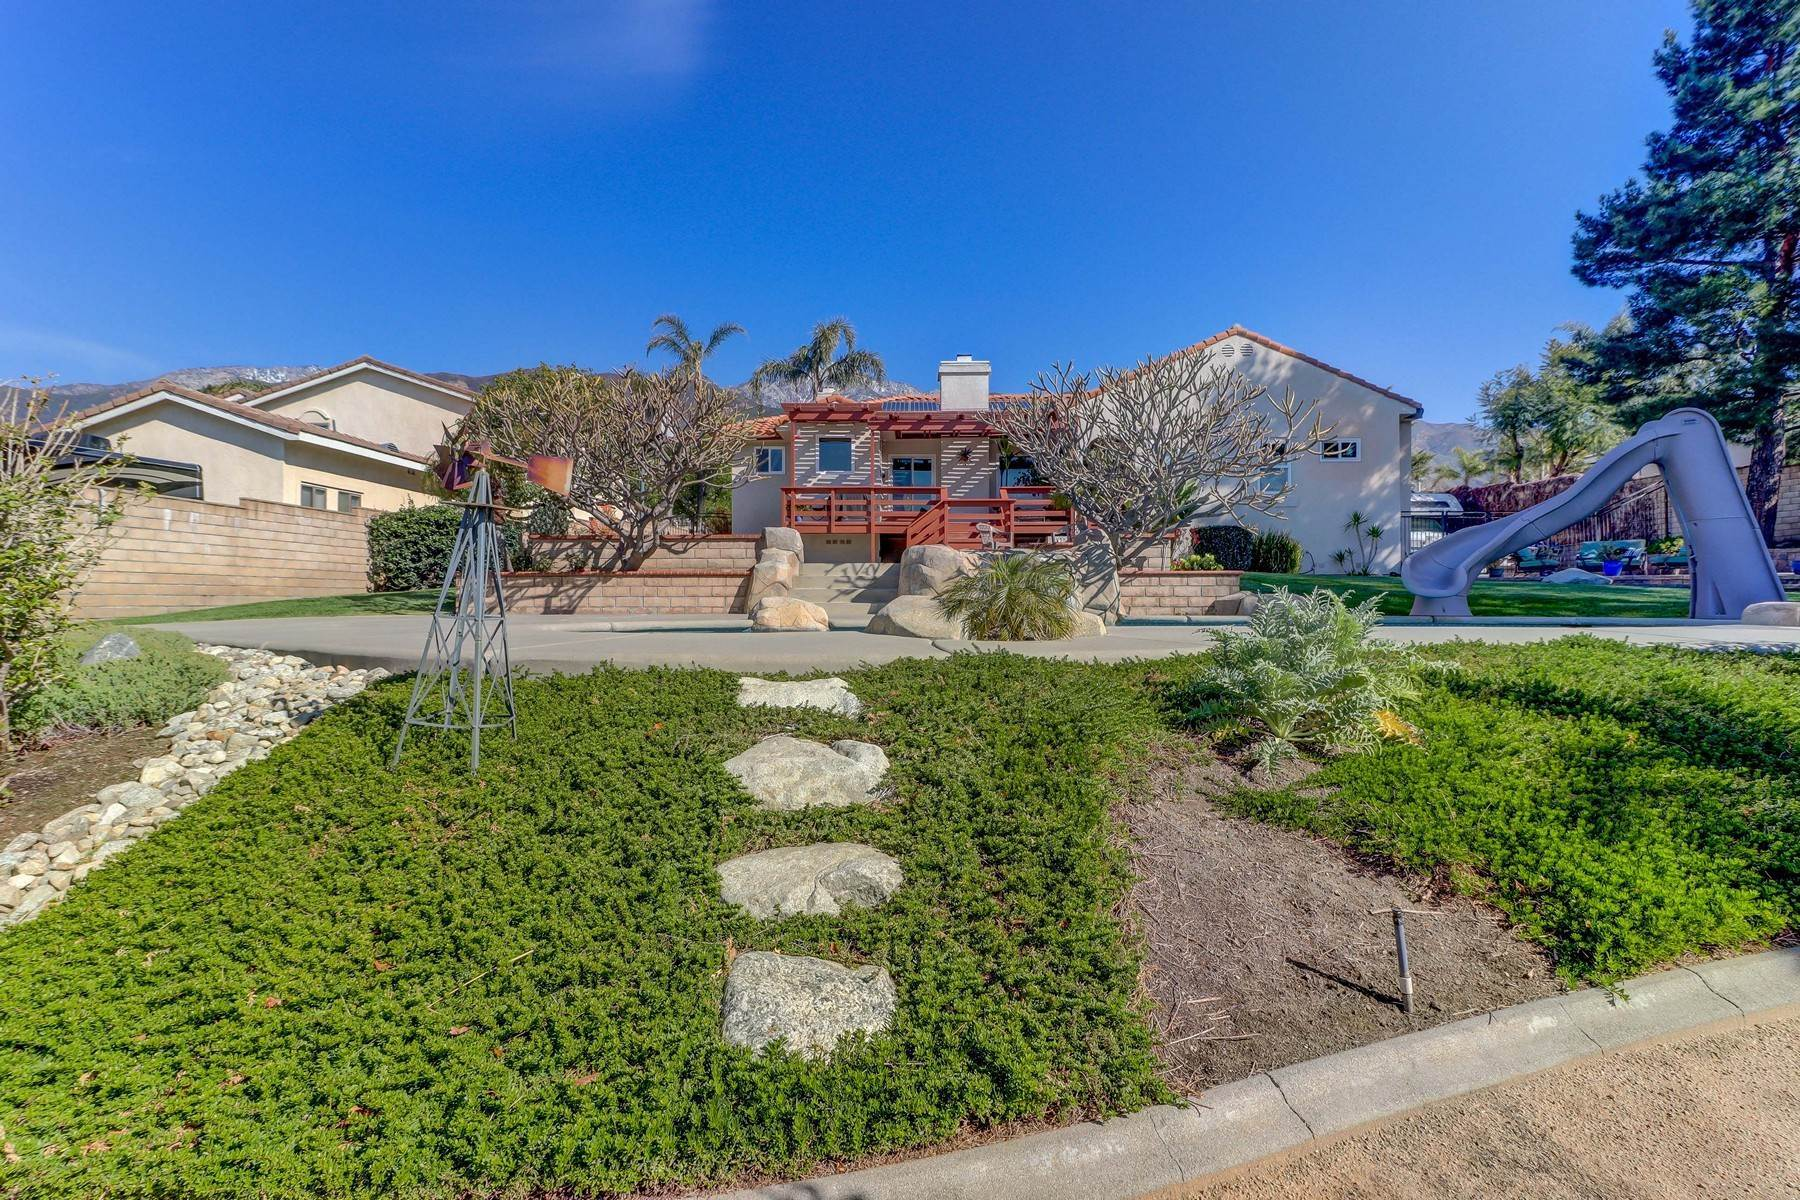 35. Single Family Homes for Sale at 10329 Vista Grove Street, Rancho Cucamonga, CA 91737 10329 Vista Grove Street Rancho Cucamonga, California 91737 United States